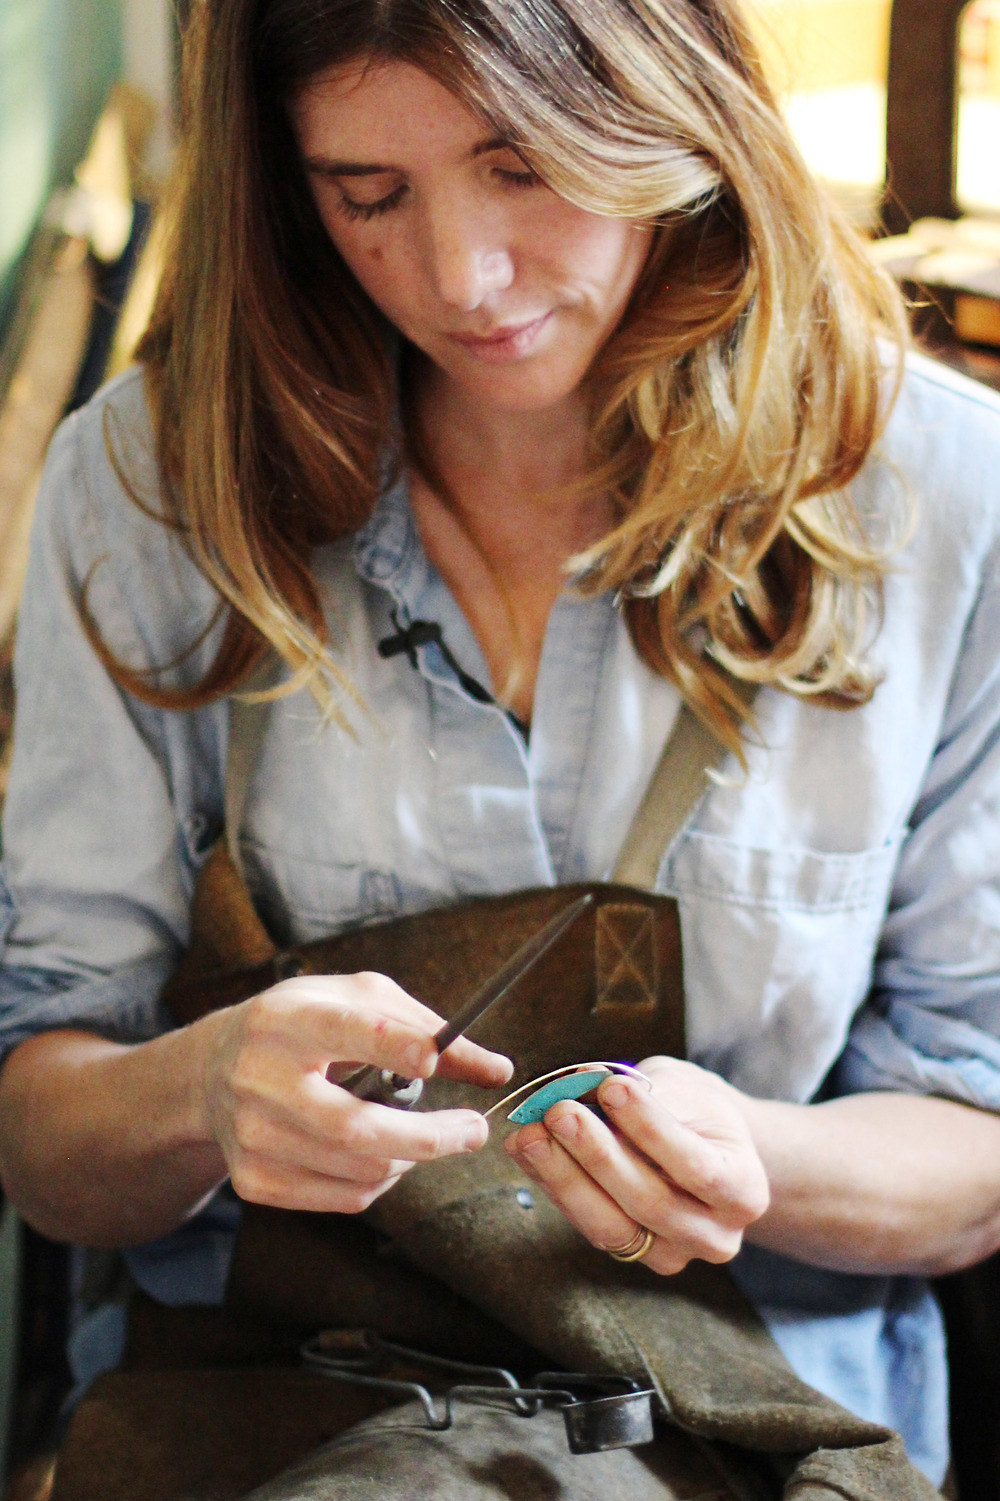 Copper Collection jewelry, an Art of Travel exclusive, is BACK by popular demand.  Shop stunning legacy jewelry pieces and accessories designed for both men and women. Crafted from salvaged pieces of Lambert's historic and iconic original copper roof, the collection features works from local artists Jennifer Walker, Peg Fetter, Roger Rimel and Leia Zumbro. Photo: Jeweler Jennifer Walker working on a 2016 Copper Collection piece.